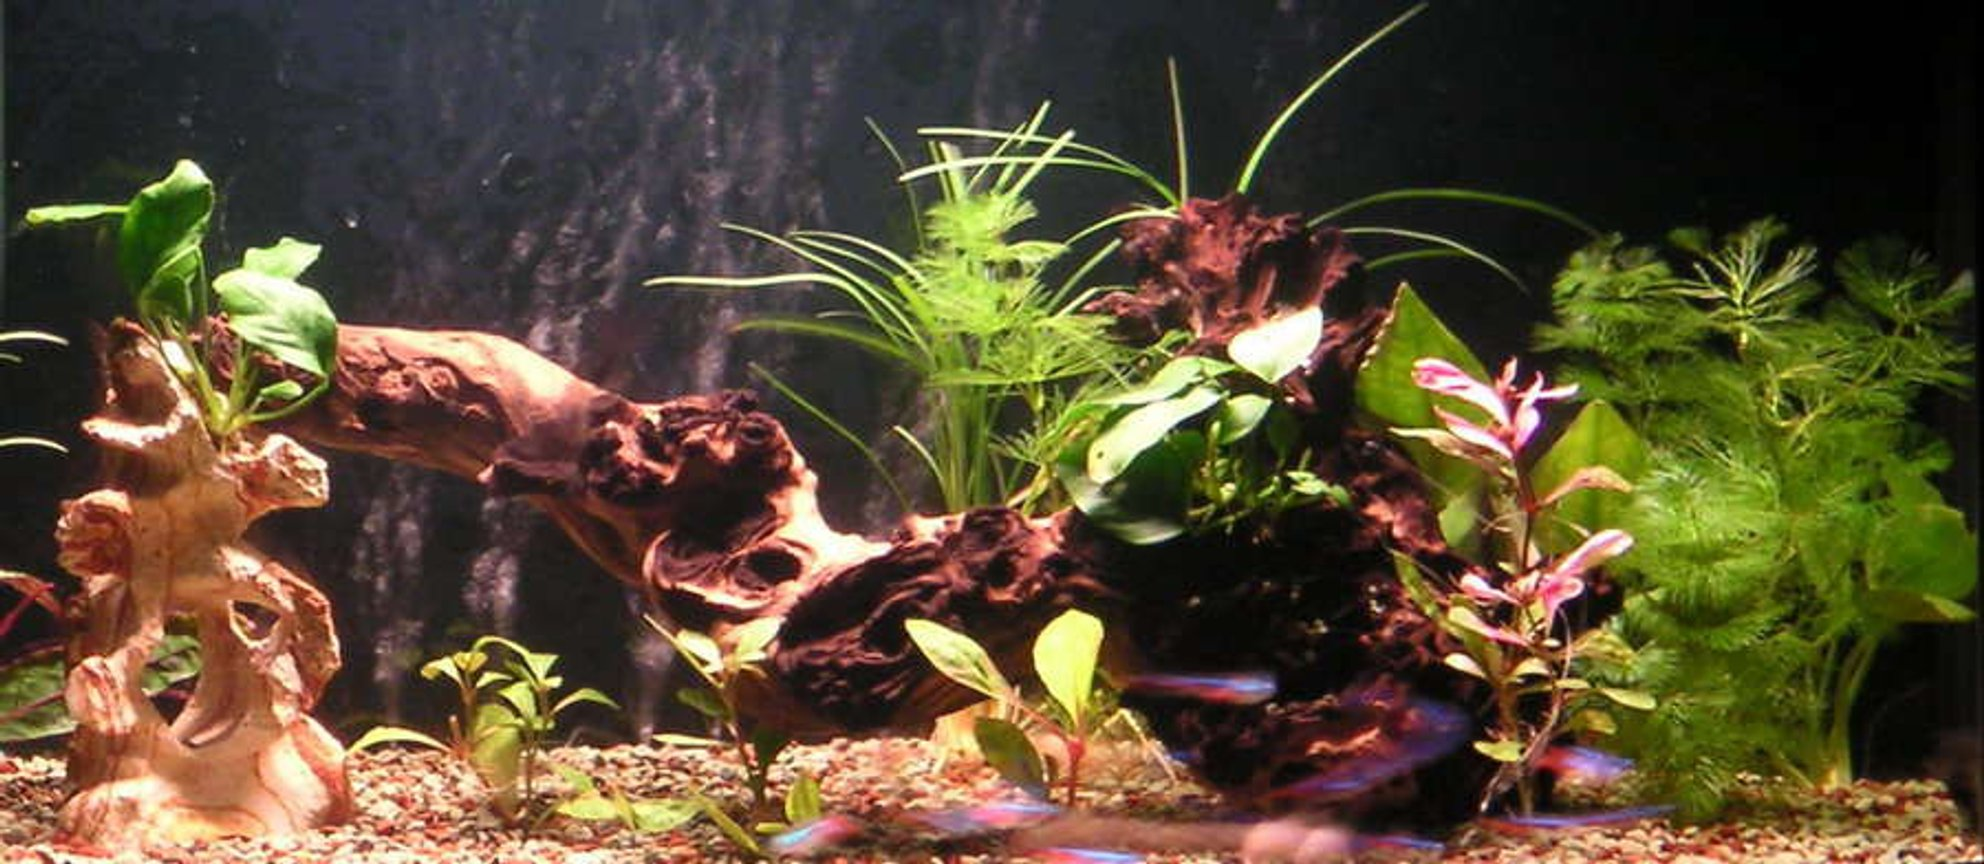 20 gallons planted tank (mostly live plants and fish) - 65*32*37cm fresh water tank